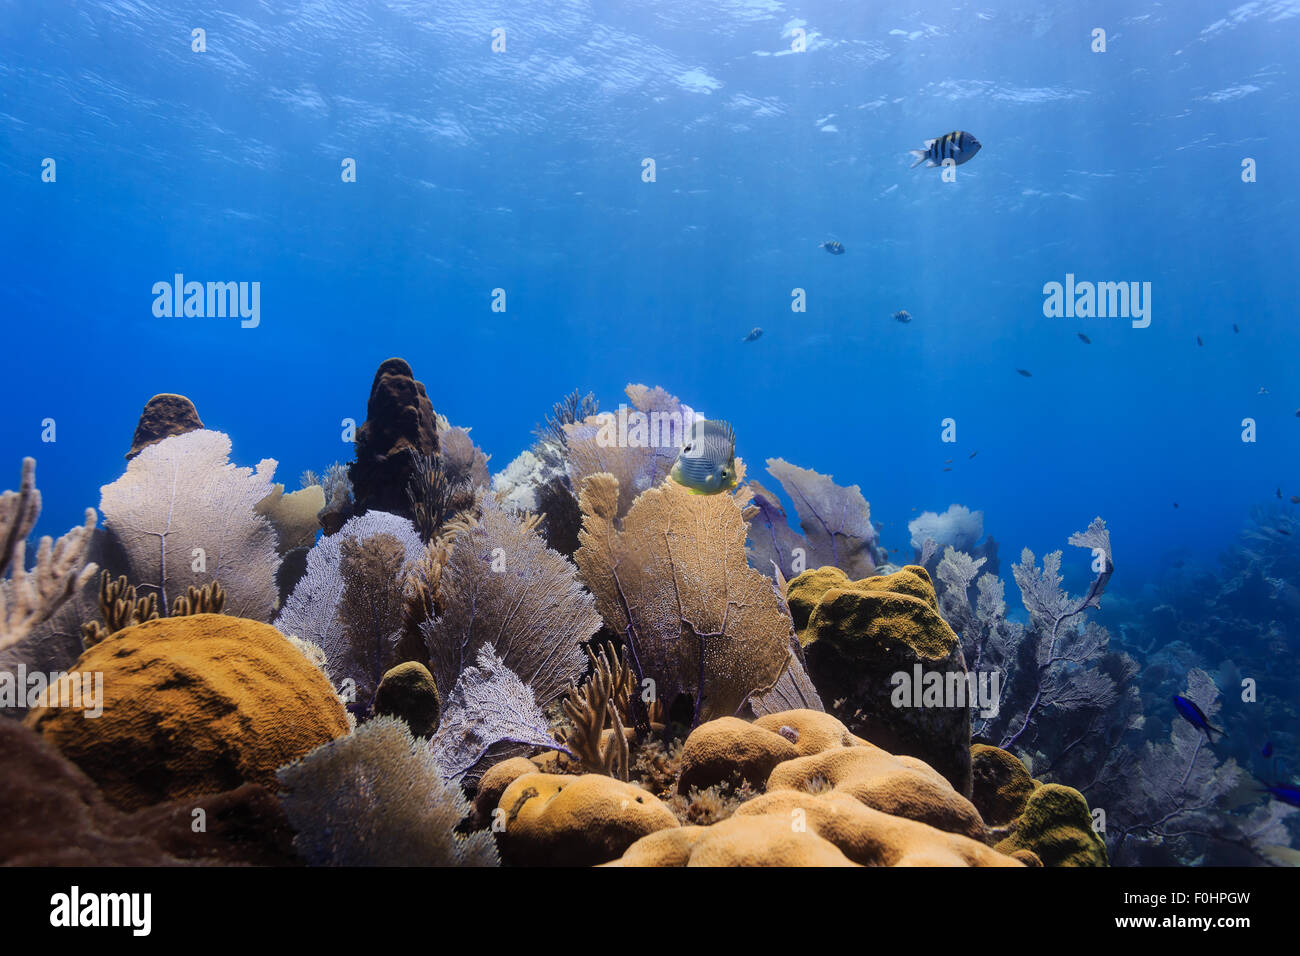 Colorful Marine Life Stockfotos & Colorful Marine Life Bilder - Alamy